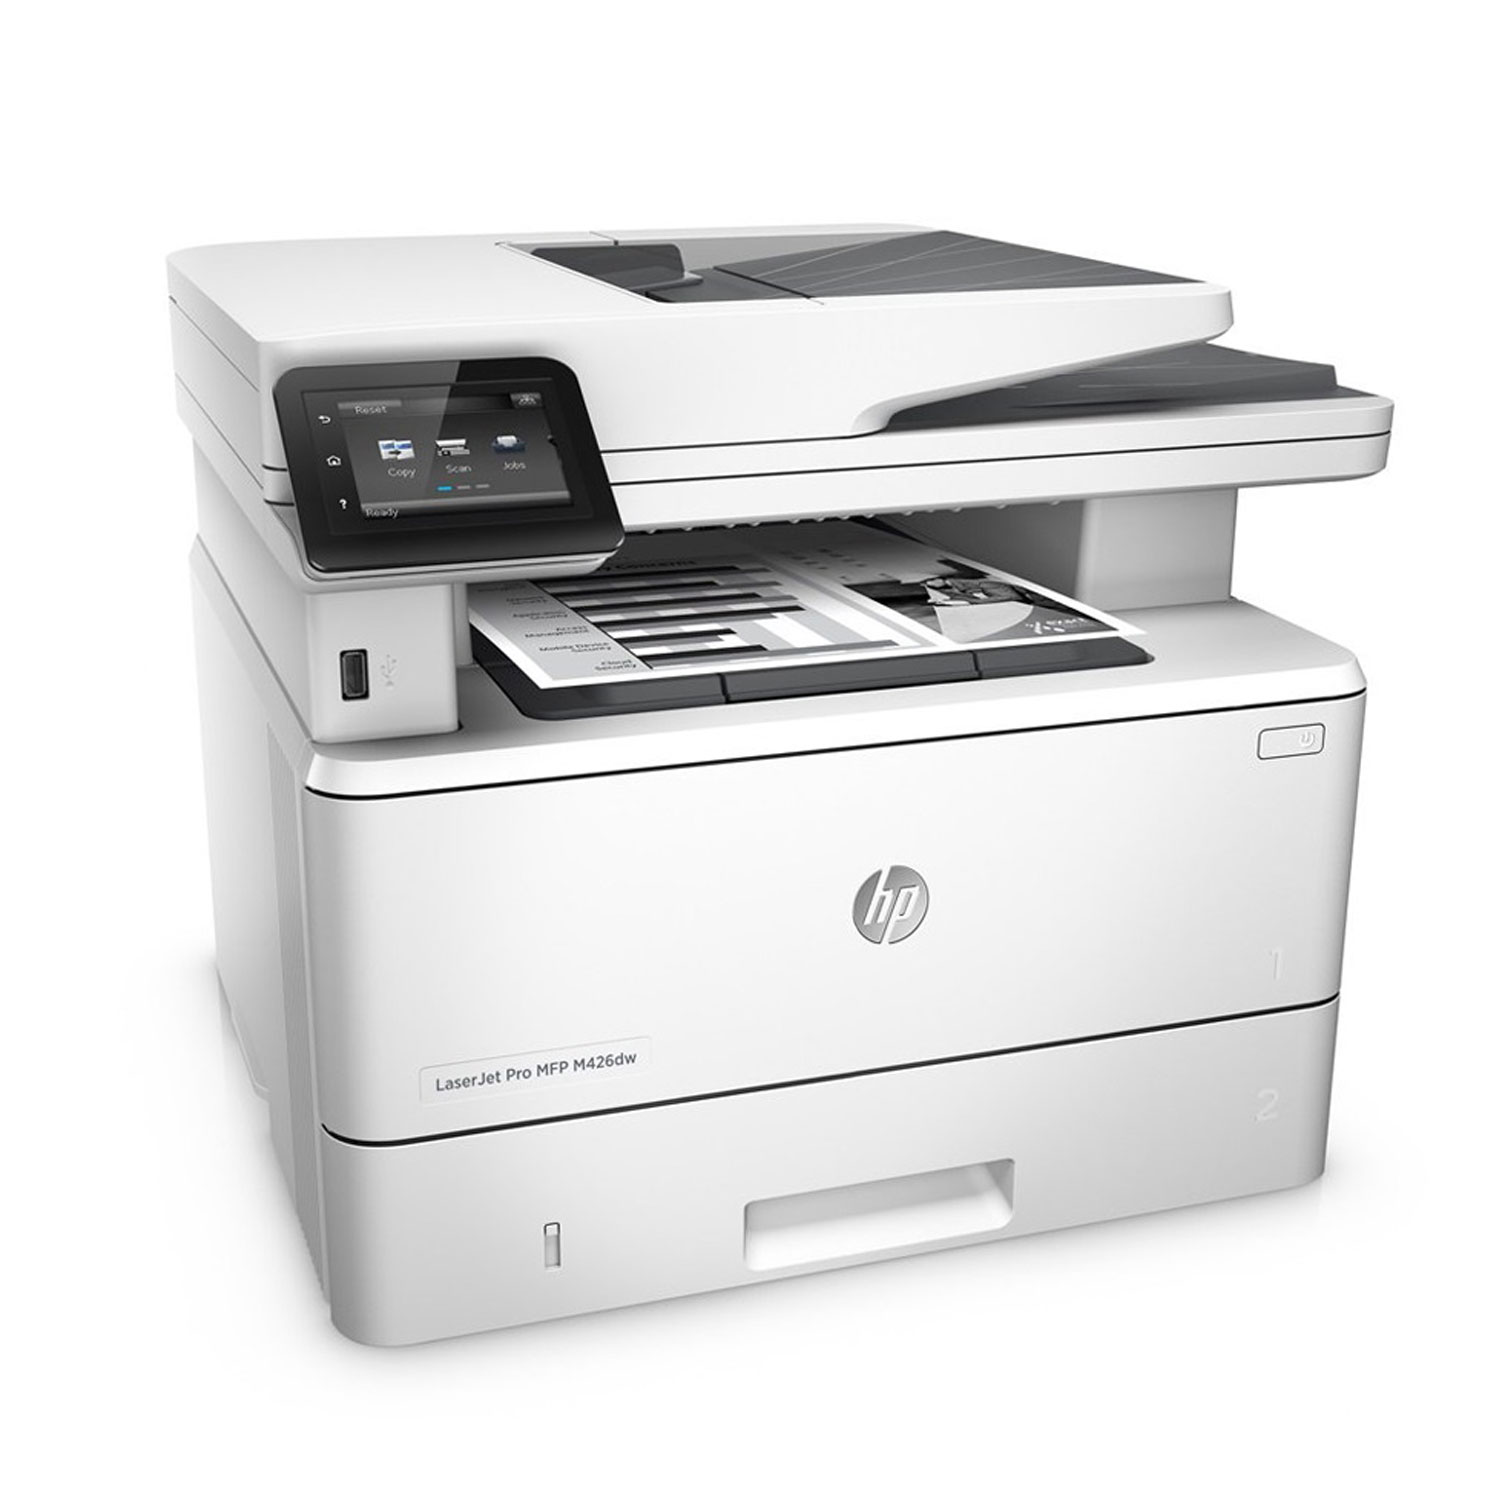 hp laserjet pro 400 m426dw imprimante multifonction hp sur. Black Bedroom Furniture Sets. Home Design Ideas